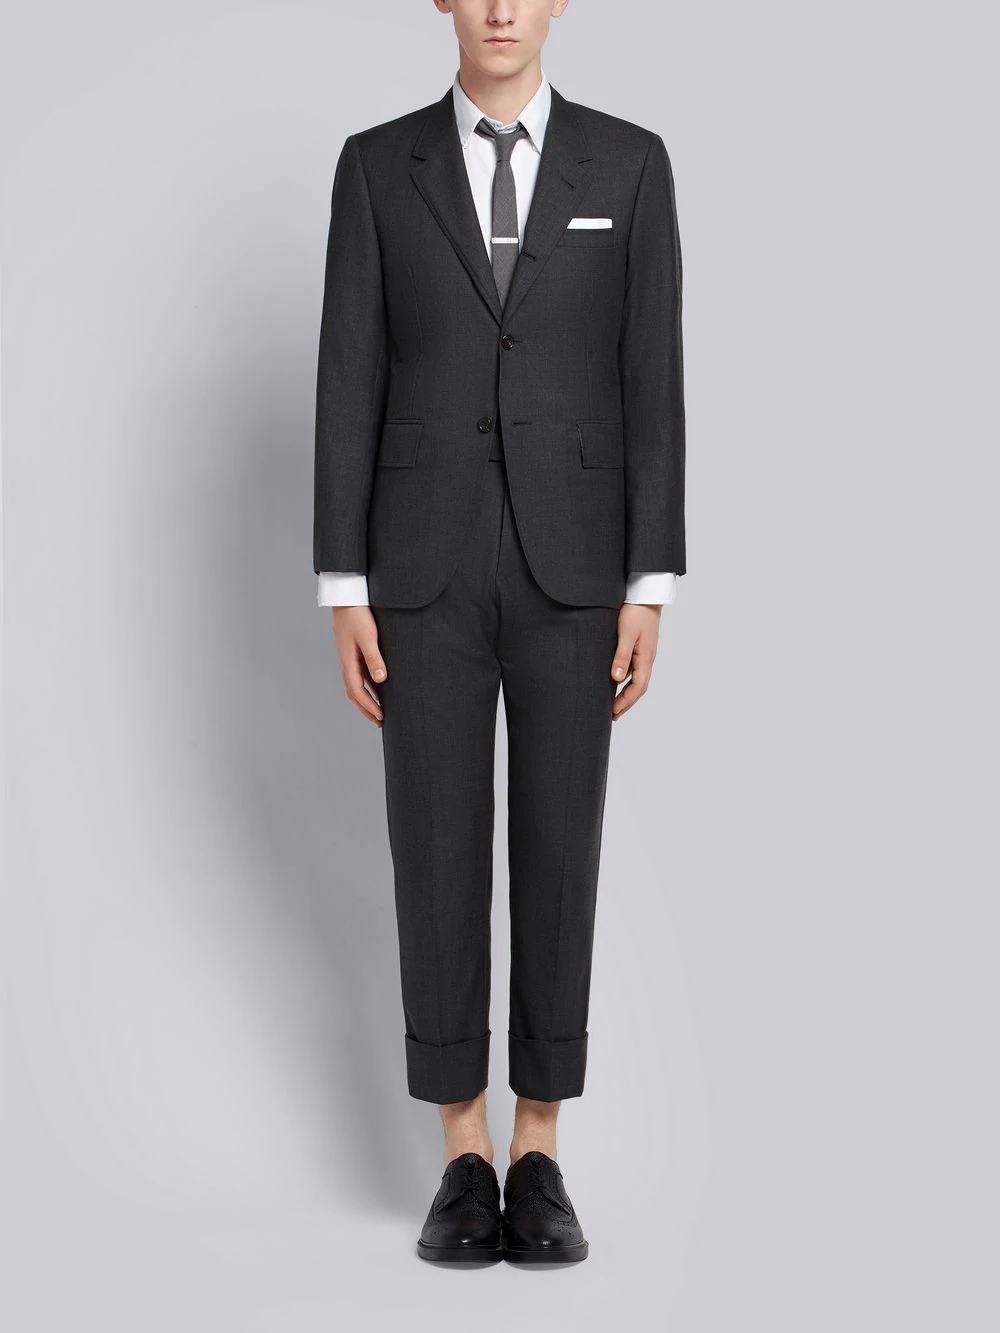 736772e51c Thom Browne Wide Lapel Suit With Tie In Grey   ModeSens